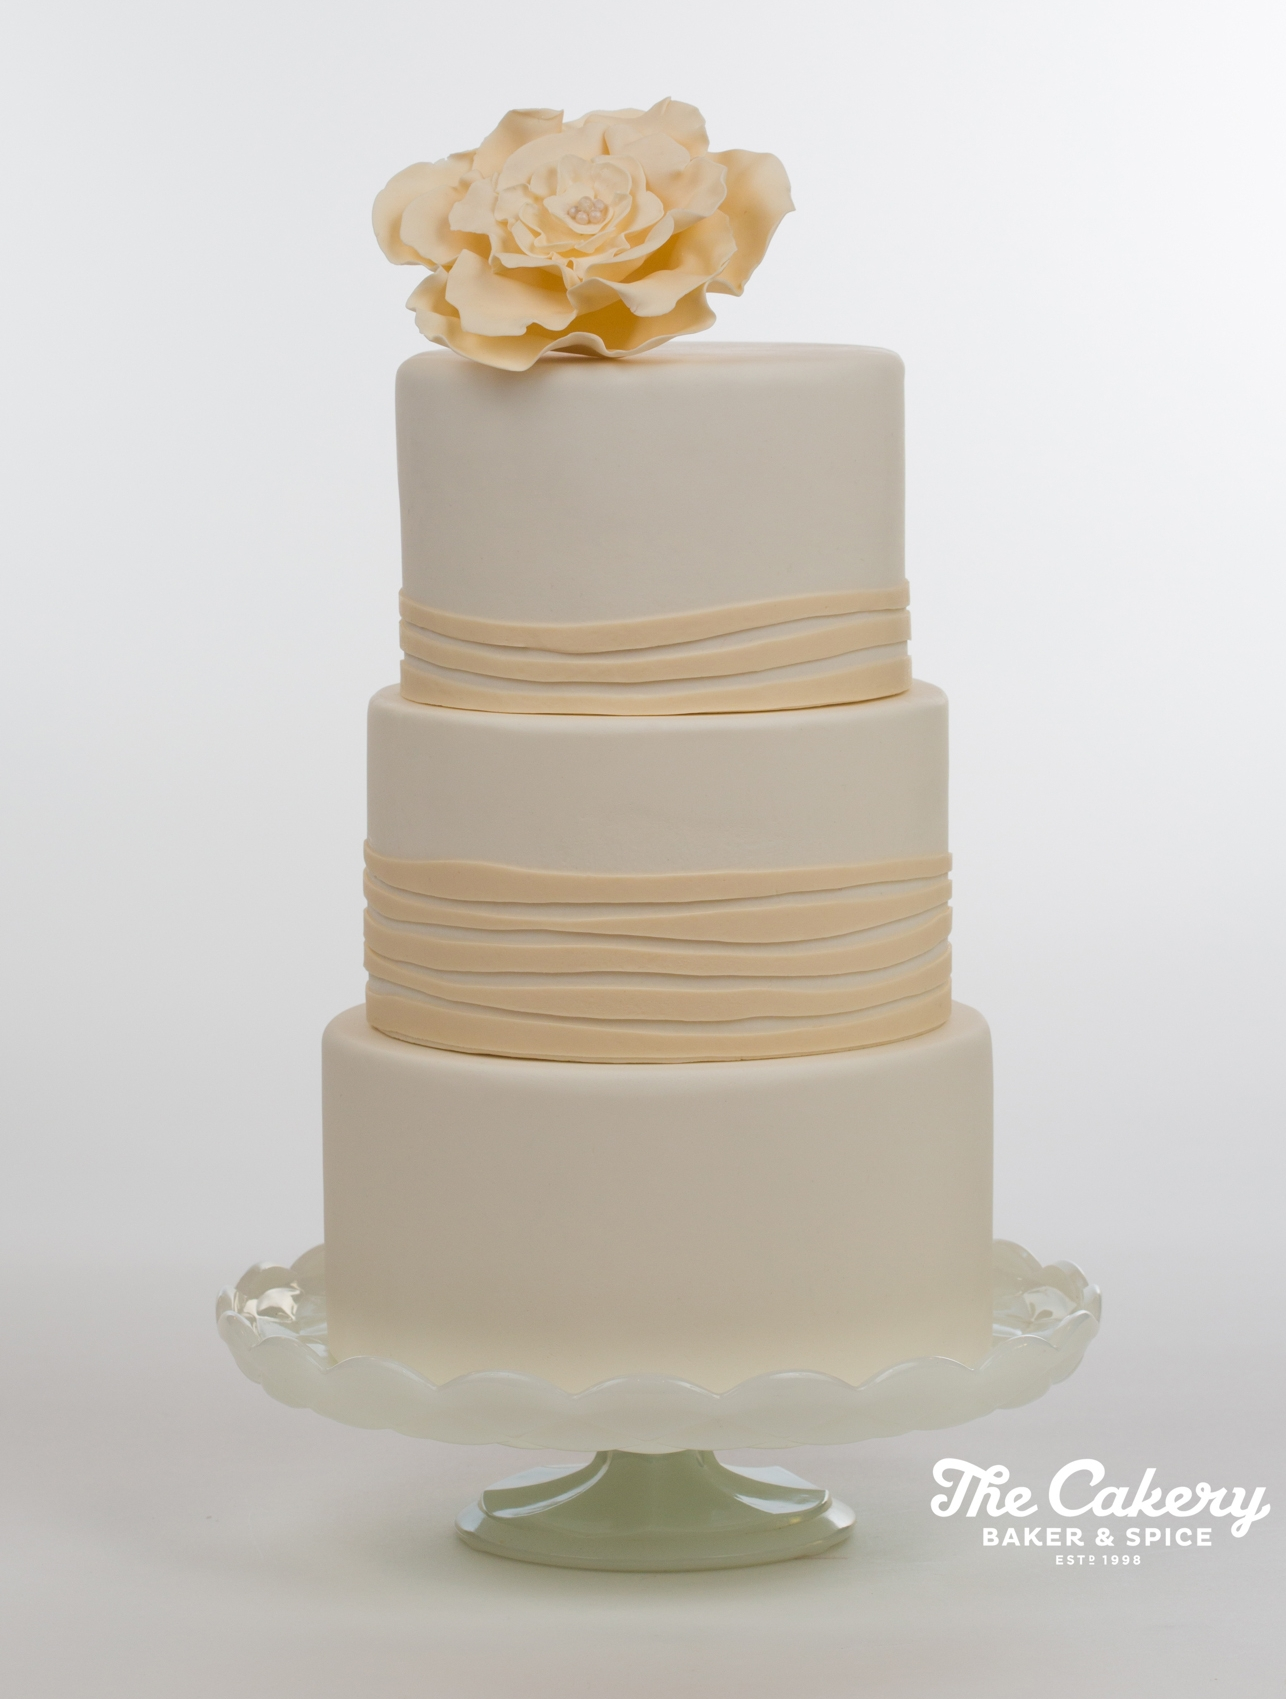 Baker and Spice - Wedding Cakes - 00174 logo2.jpg